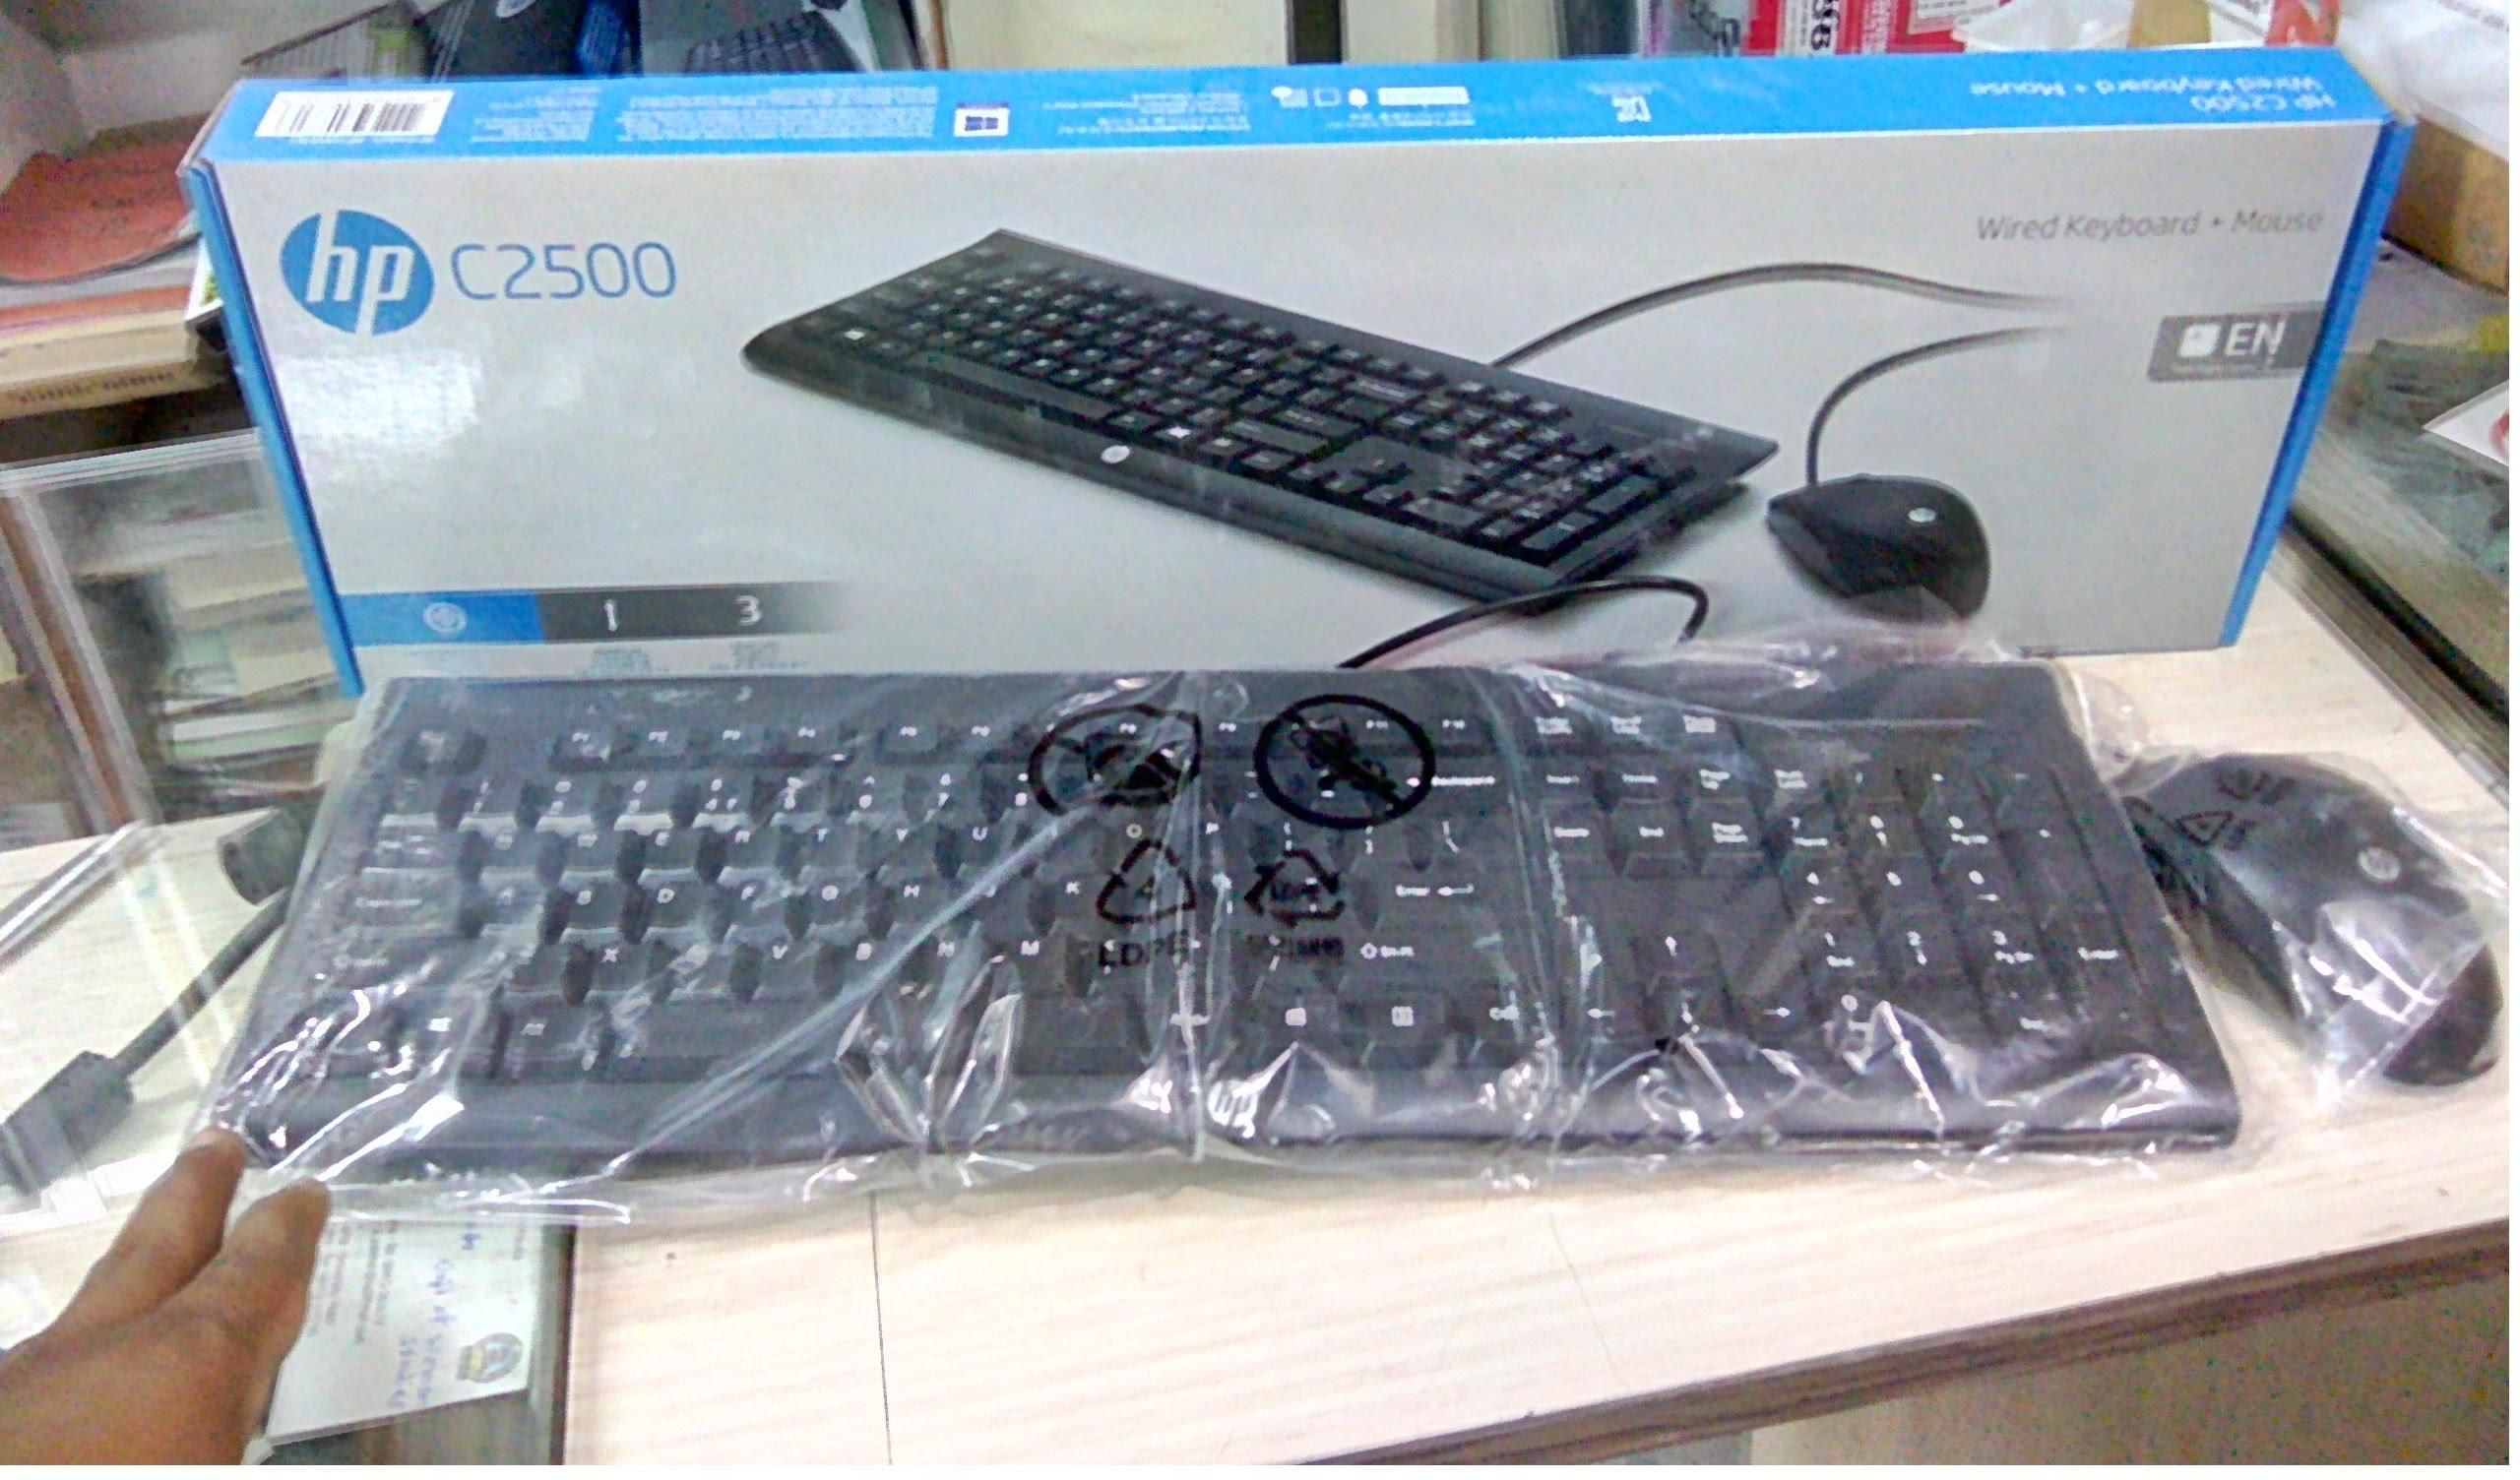 e9c2aa4373c HP C2500 (Wired Keyboard Mouse - 1,200DPI) - NEW | Secondhand.my